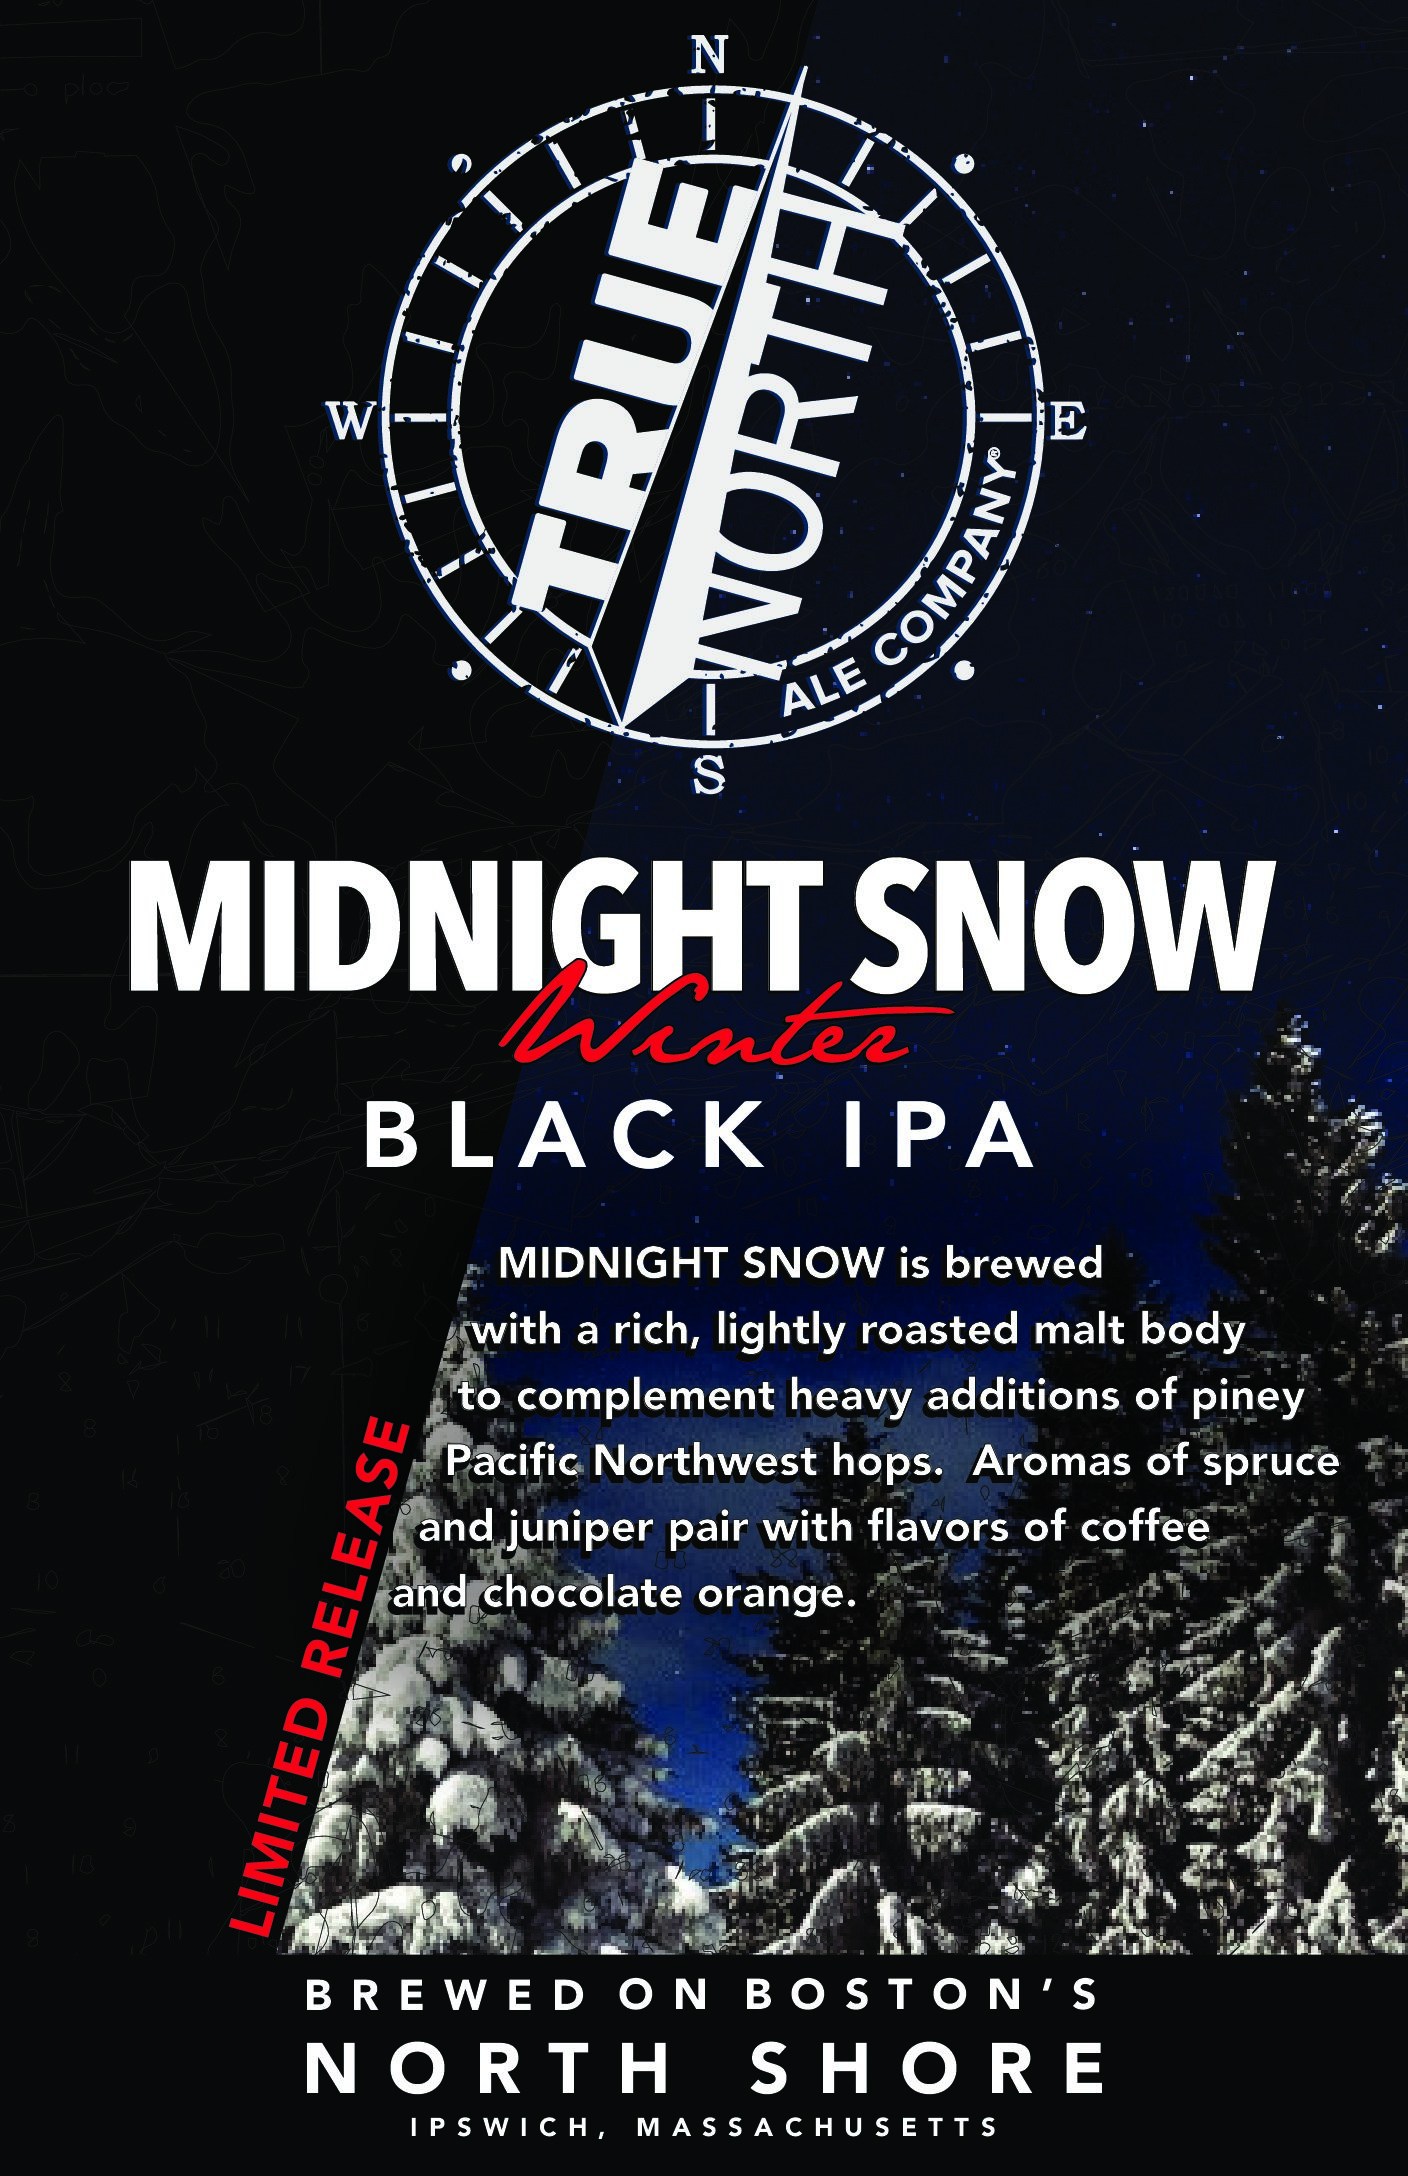 True North Ales Releases Midnight Snow Winter Black IPA